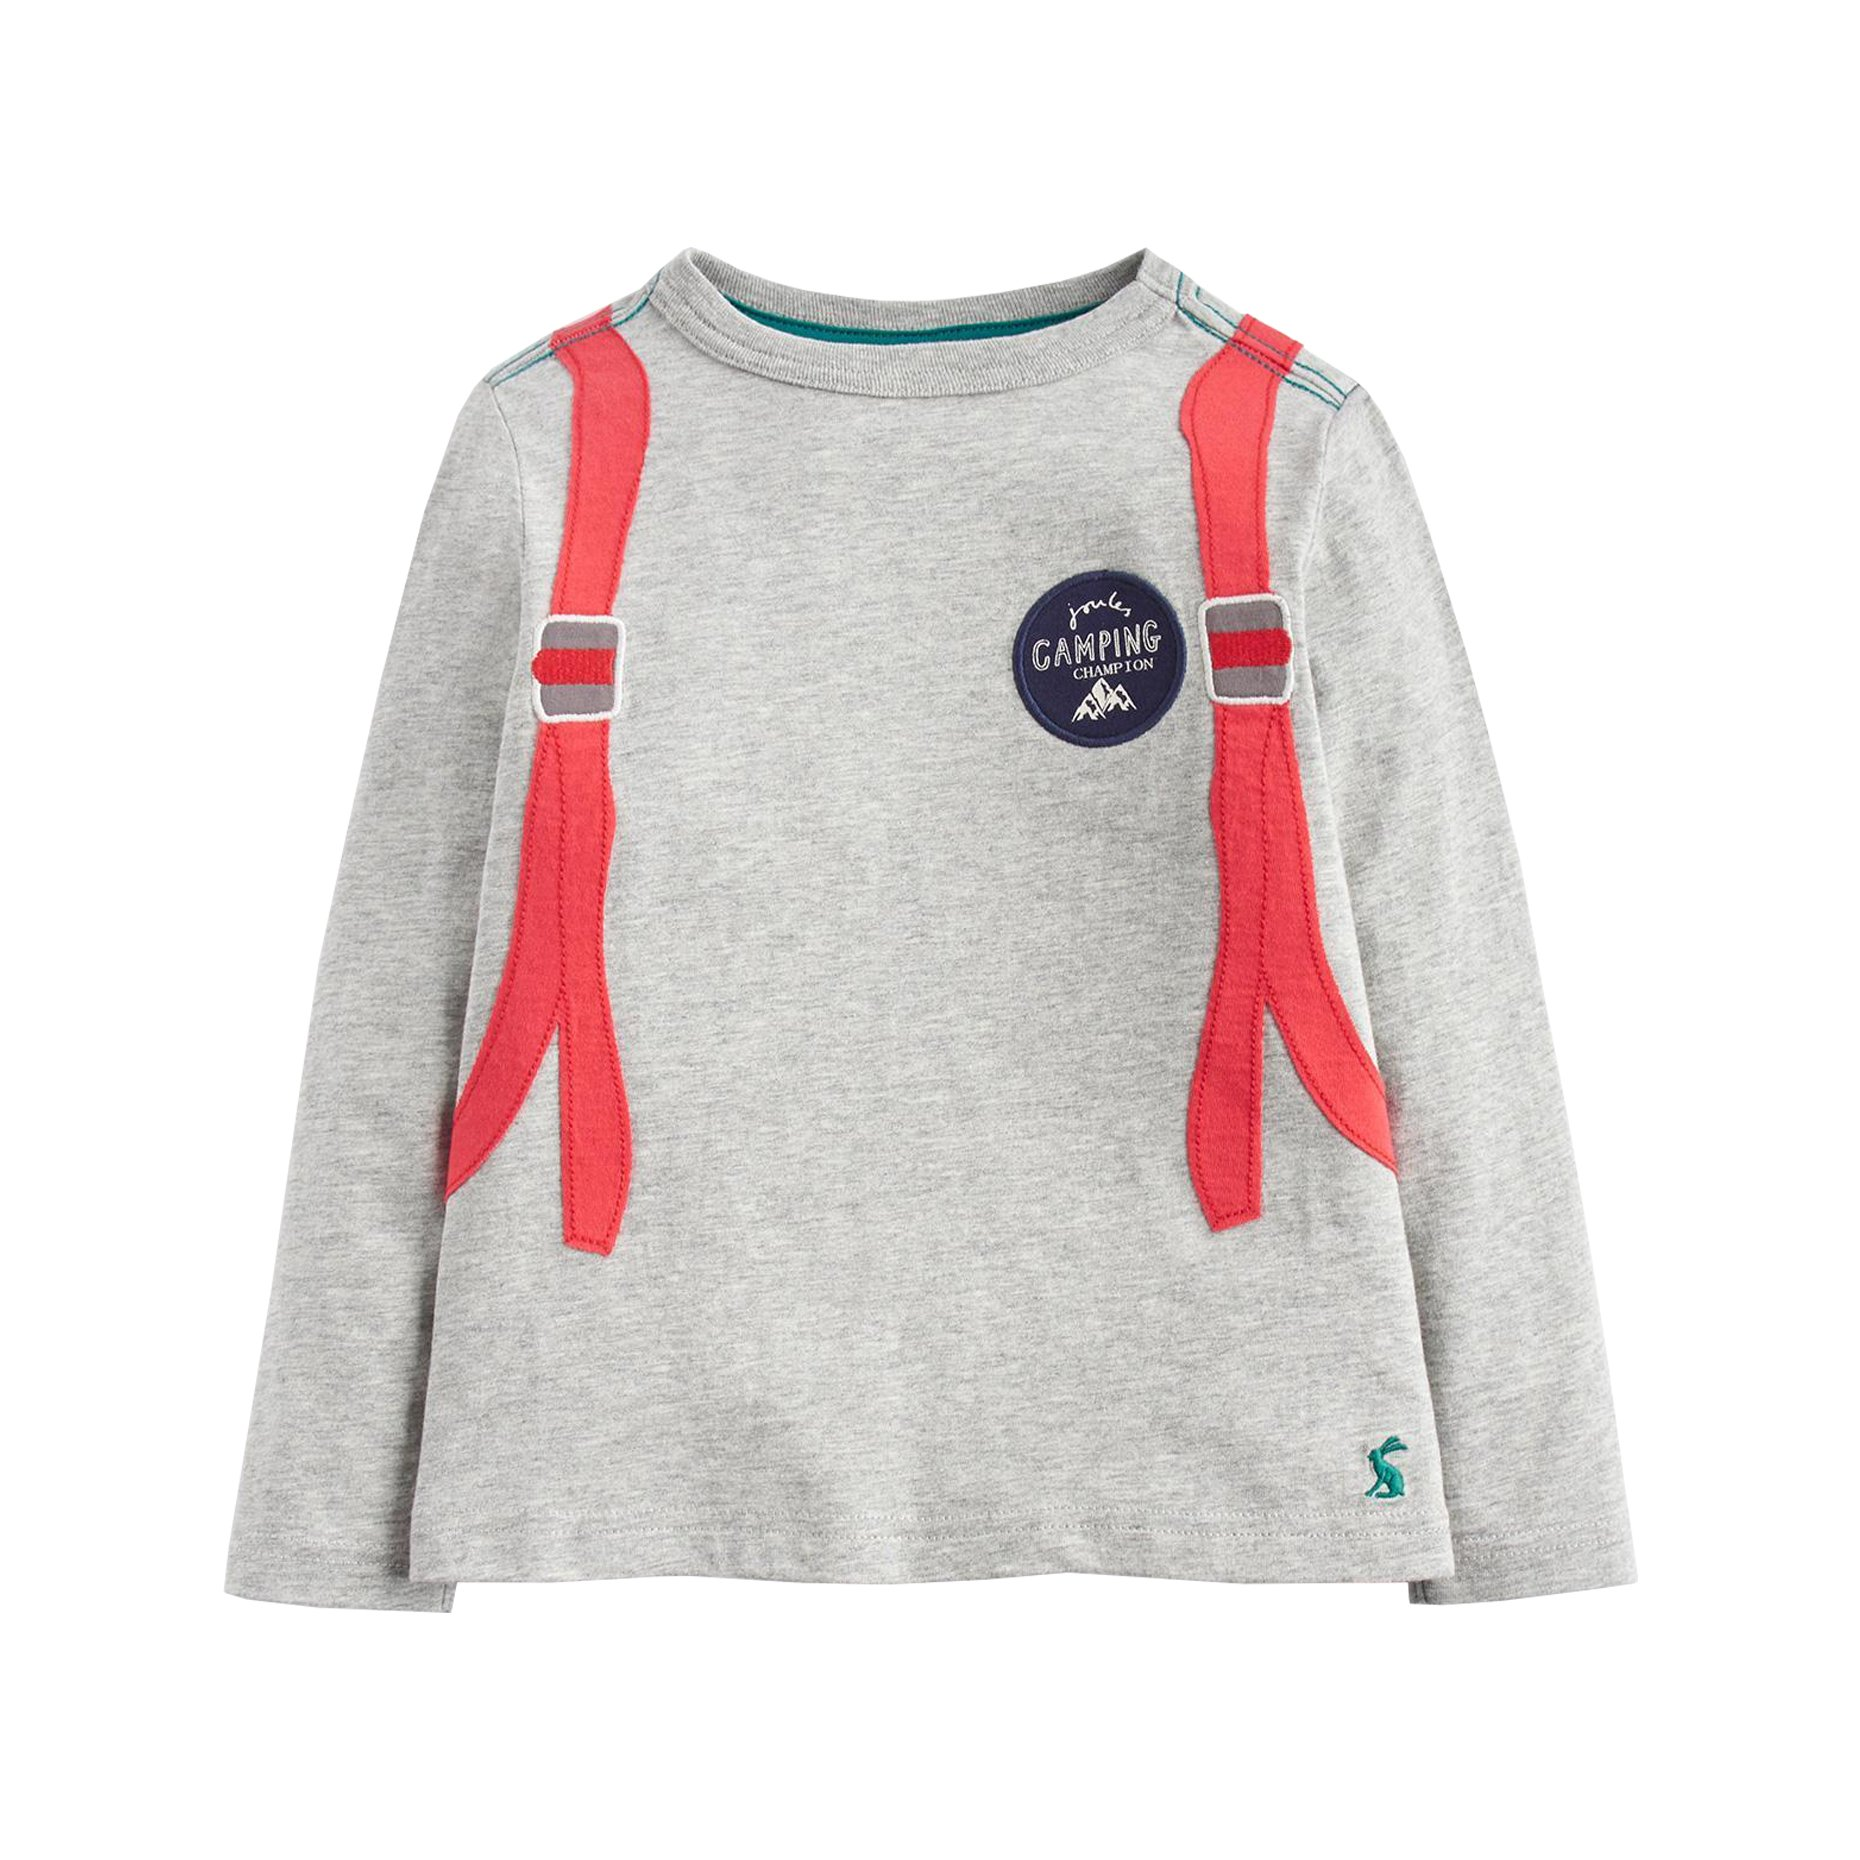 Joules Kids Baby Boy's Applique Jersey Long Sleeve Tee (Toddler/Little Kids) Grey Marl Backpack 6